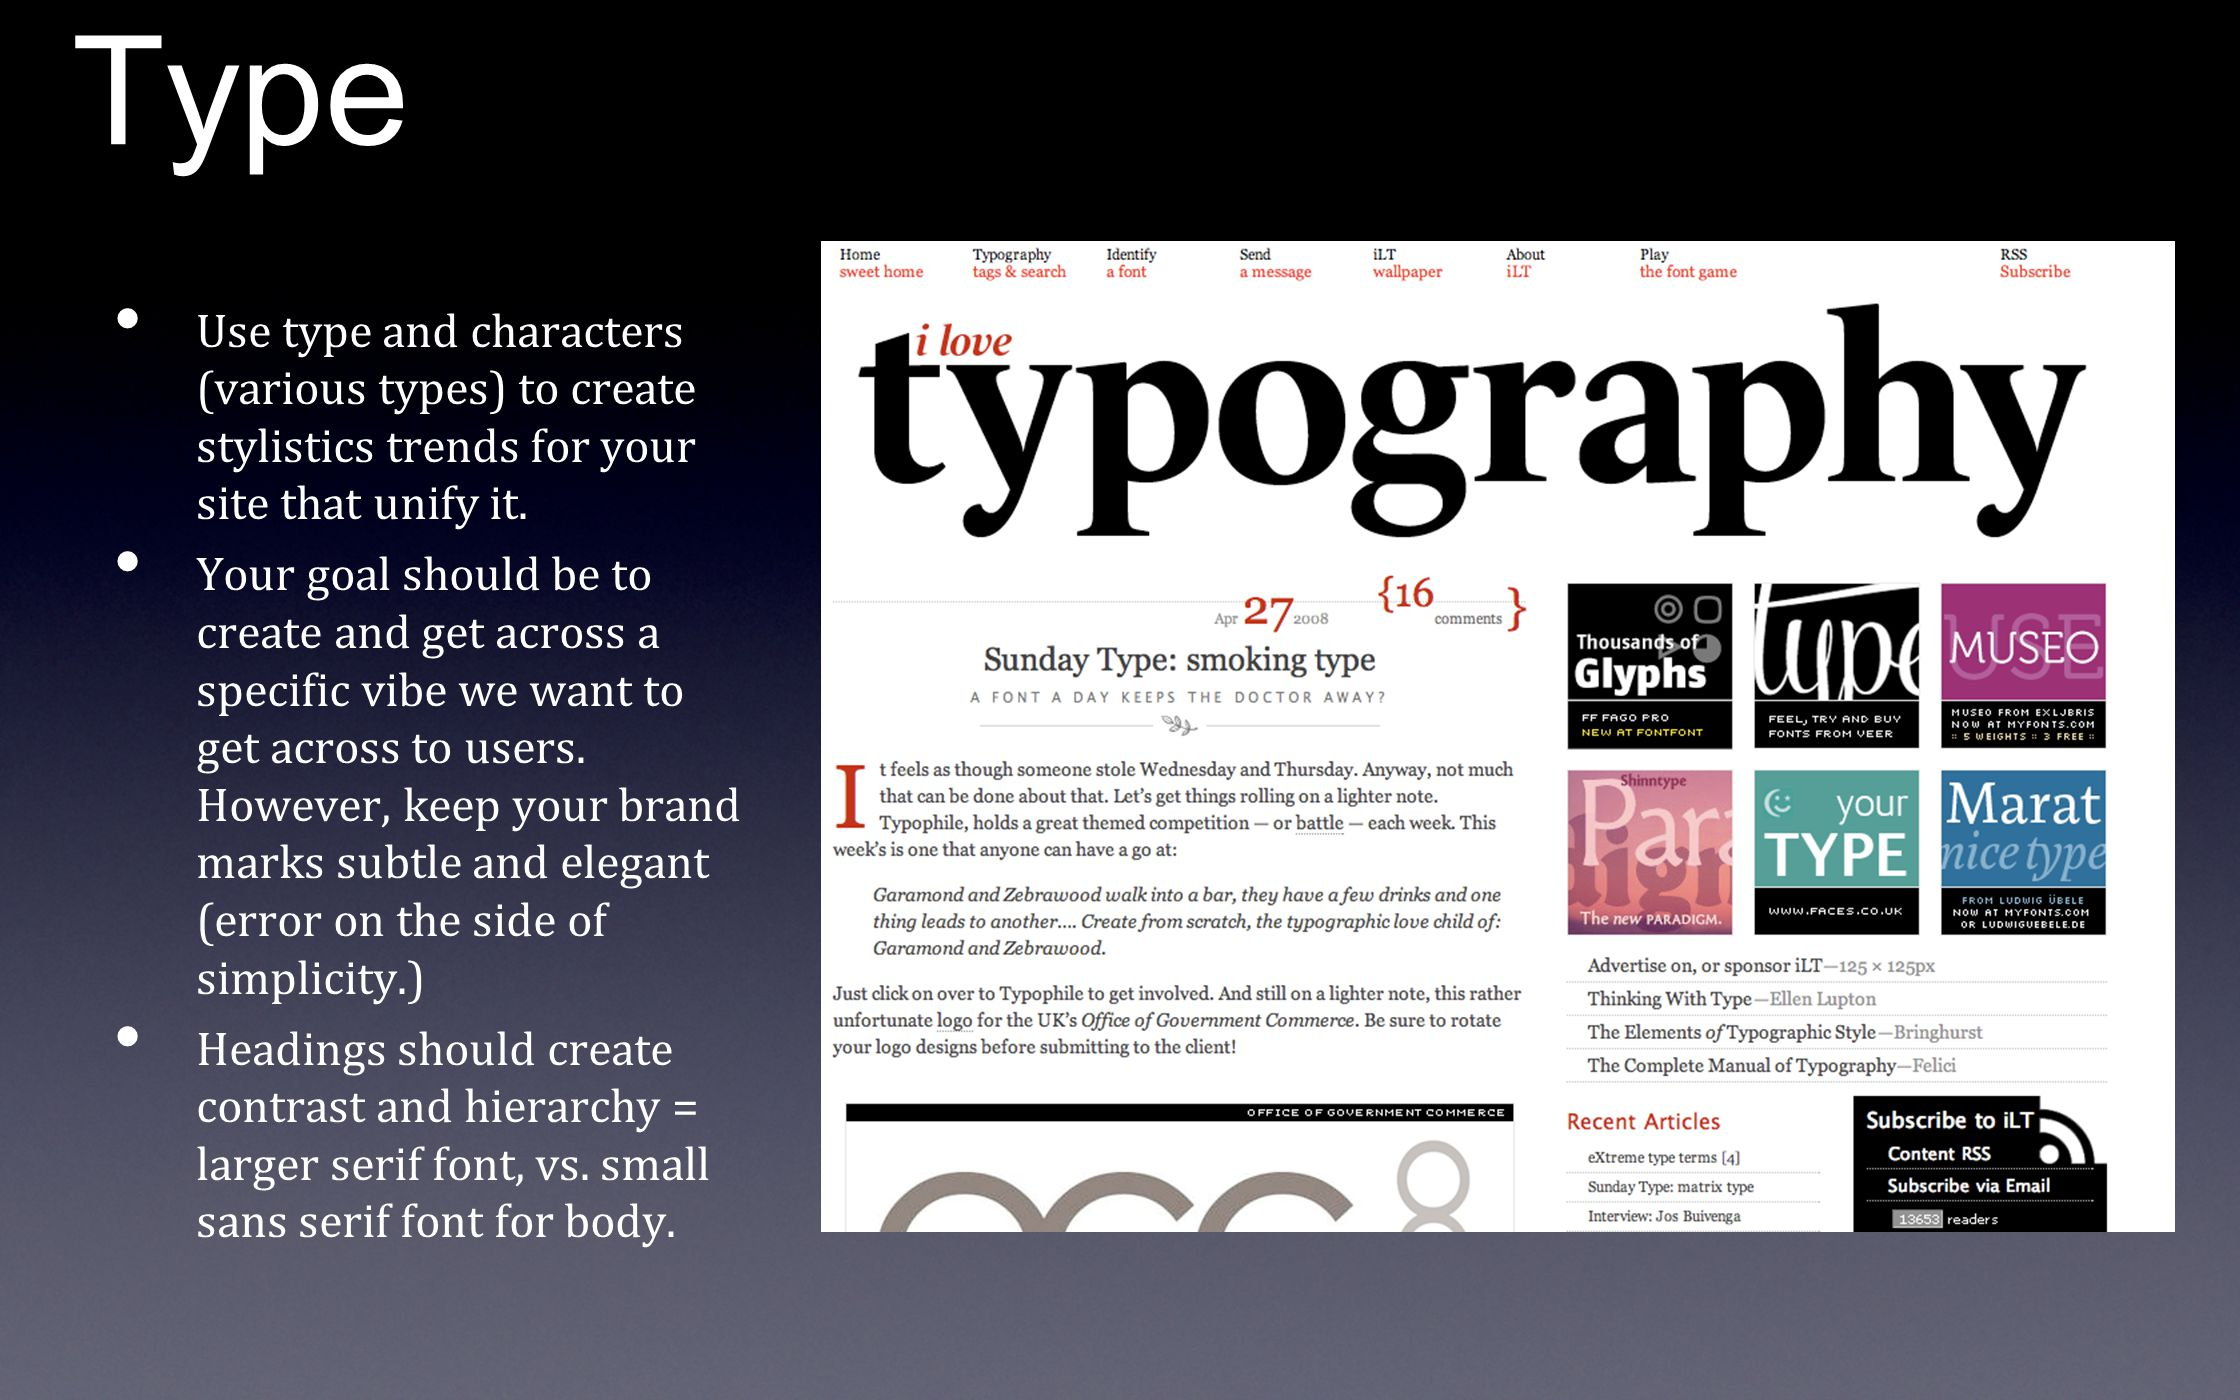 Type Use type and characters (various types) to create stylistics trends for your site that unify it.